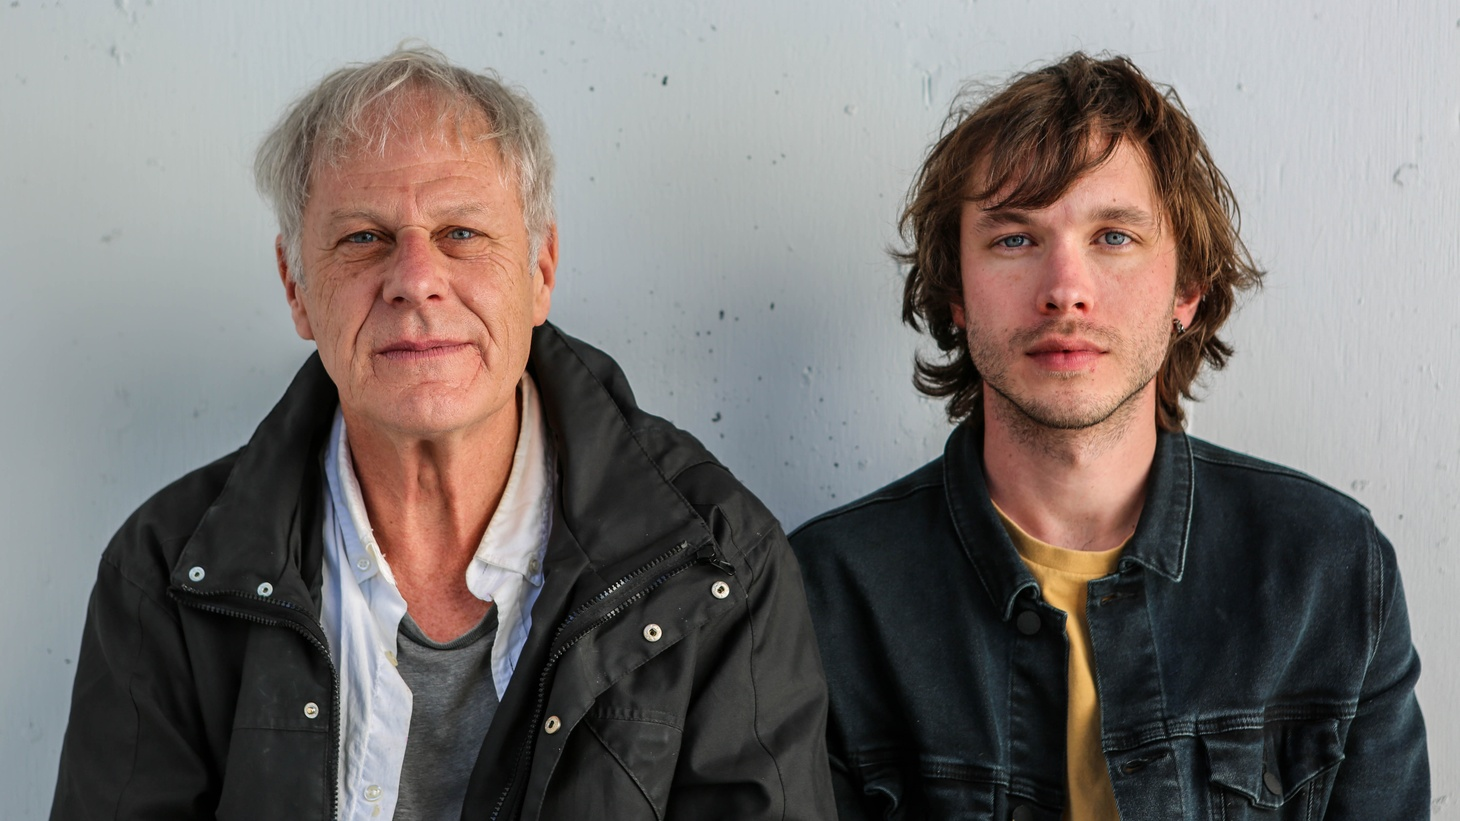 Author, Dennis Cooper and collaborator, Zach Farley